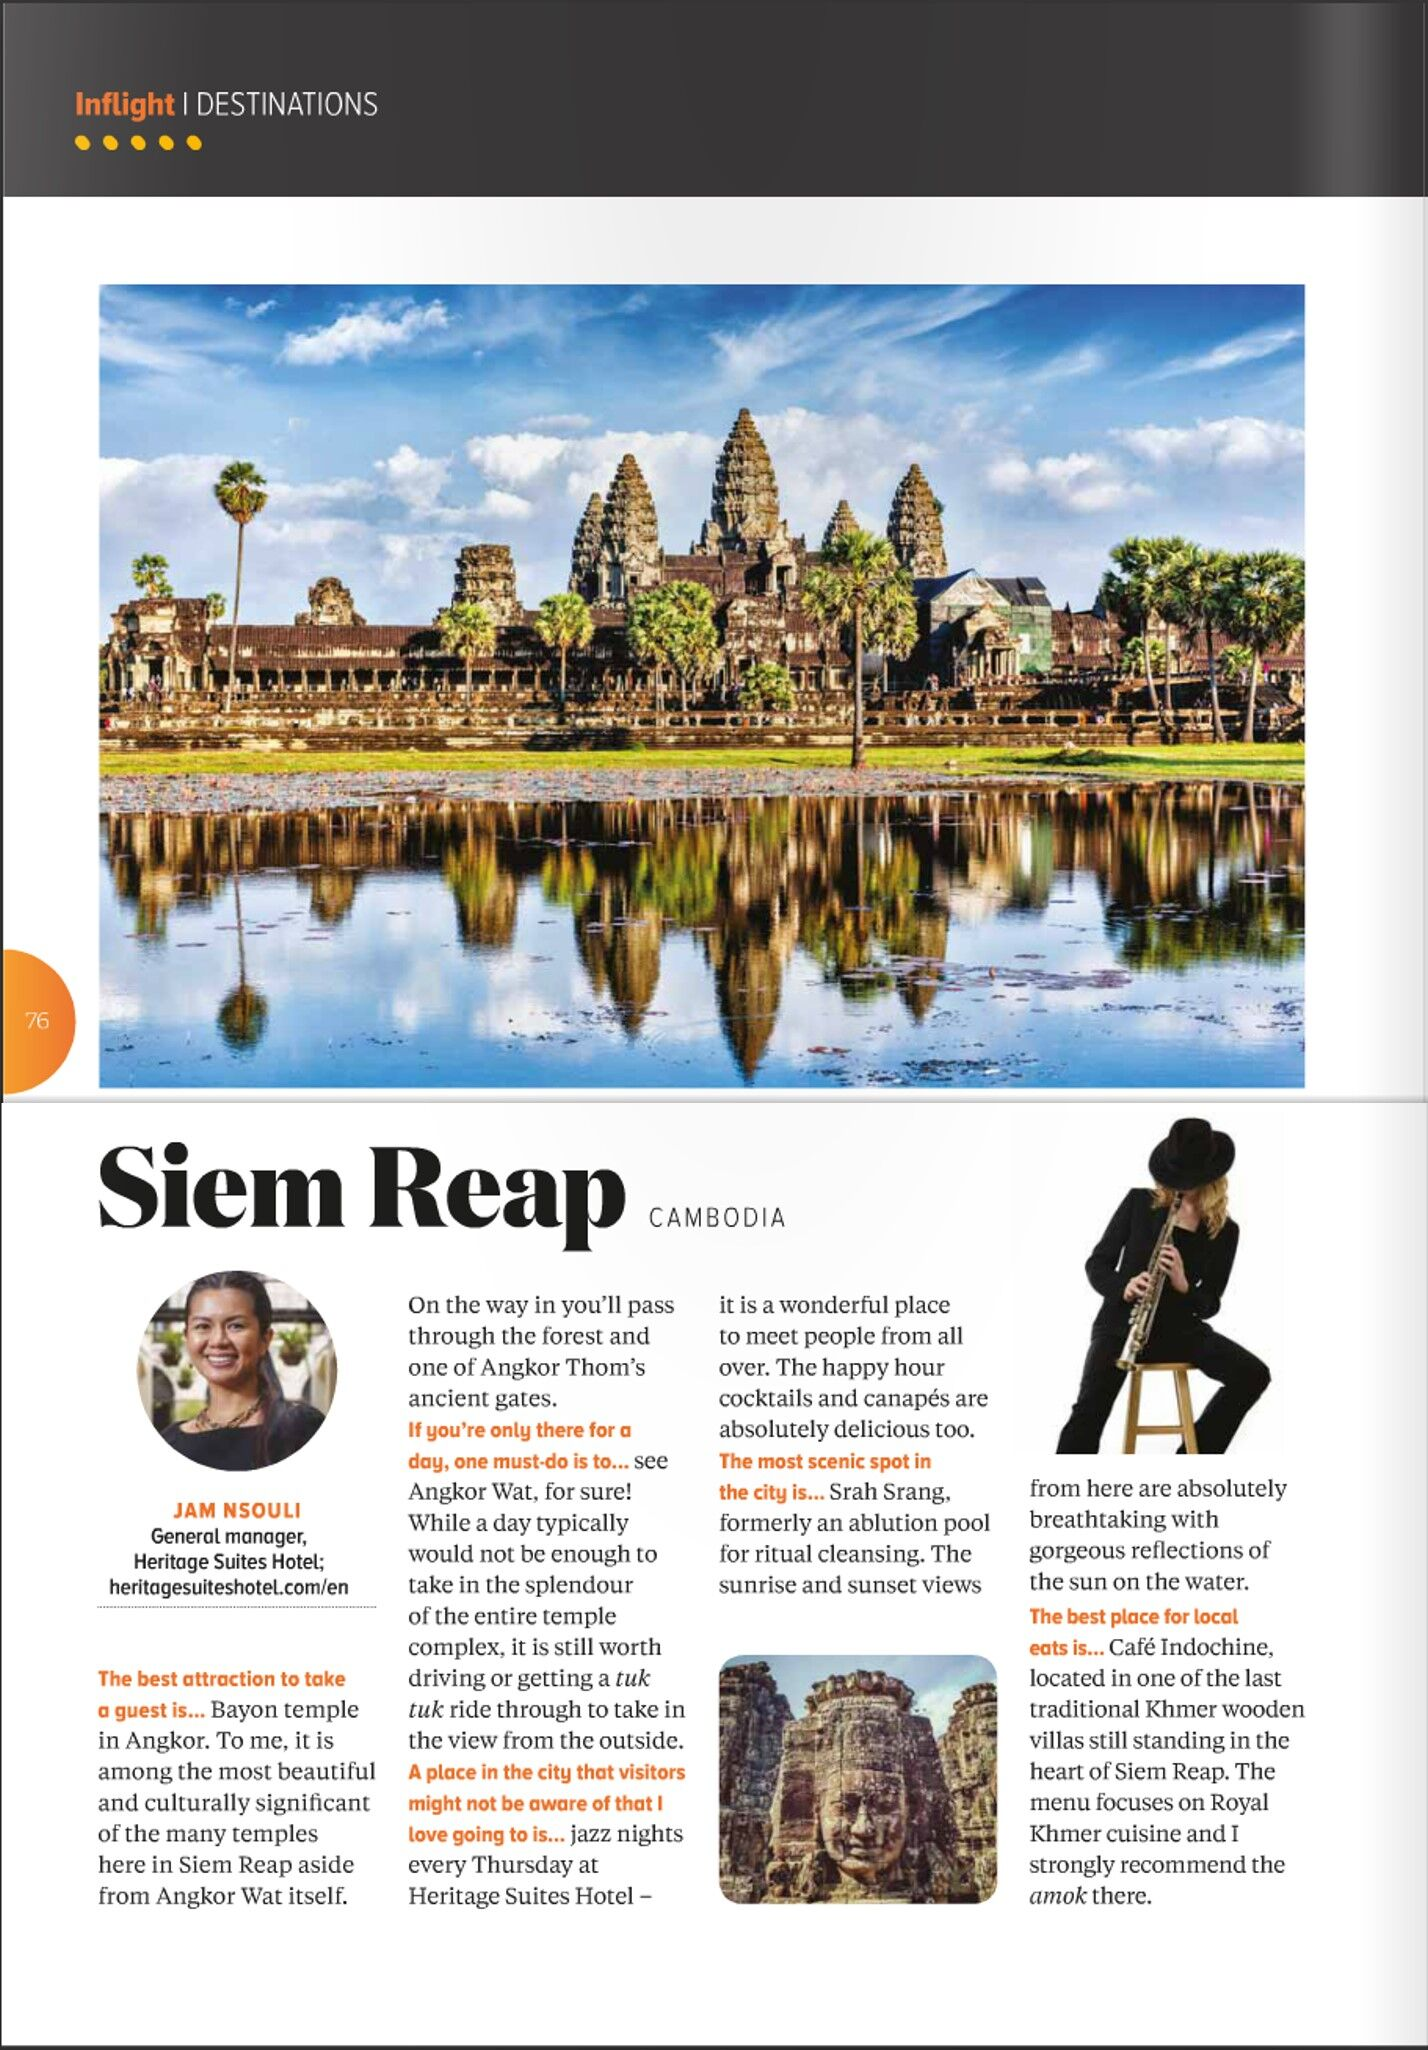 Heritage Suites Hotel luxury travel pr case study media coverage - Jetstar Asia inflight magazine